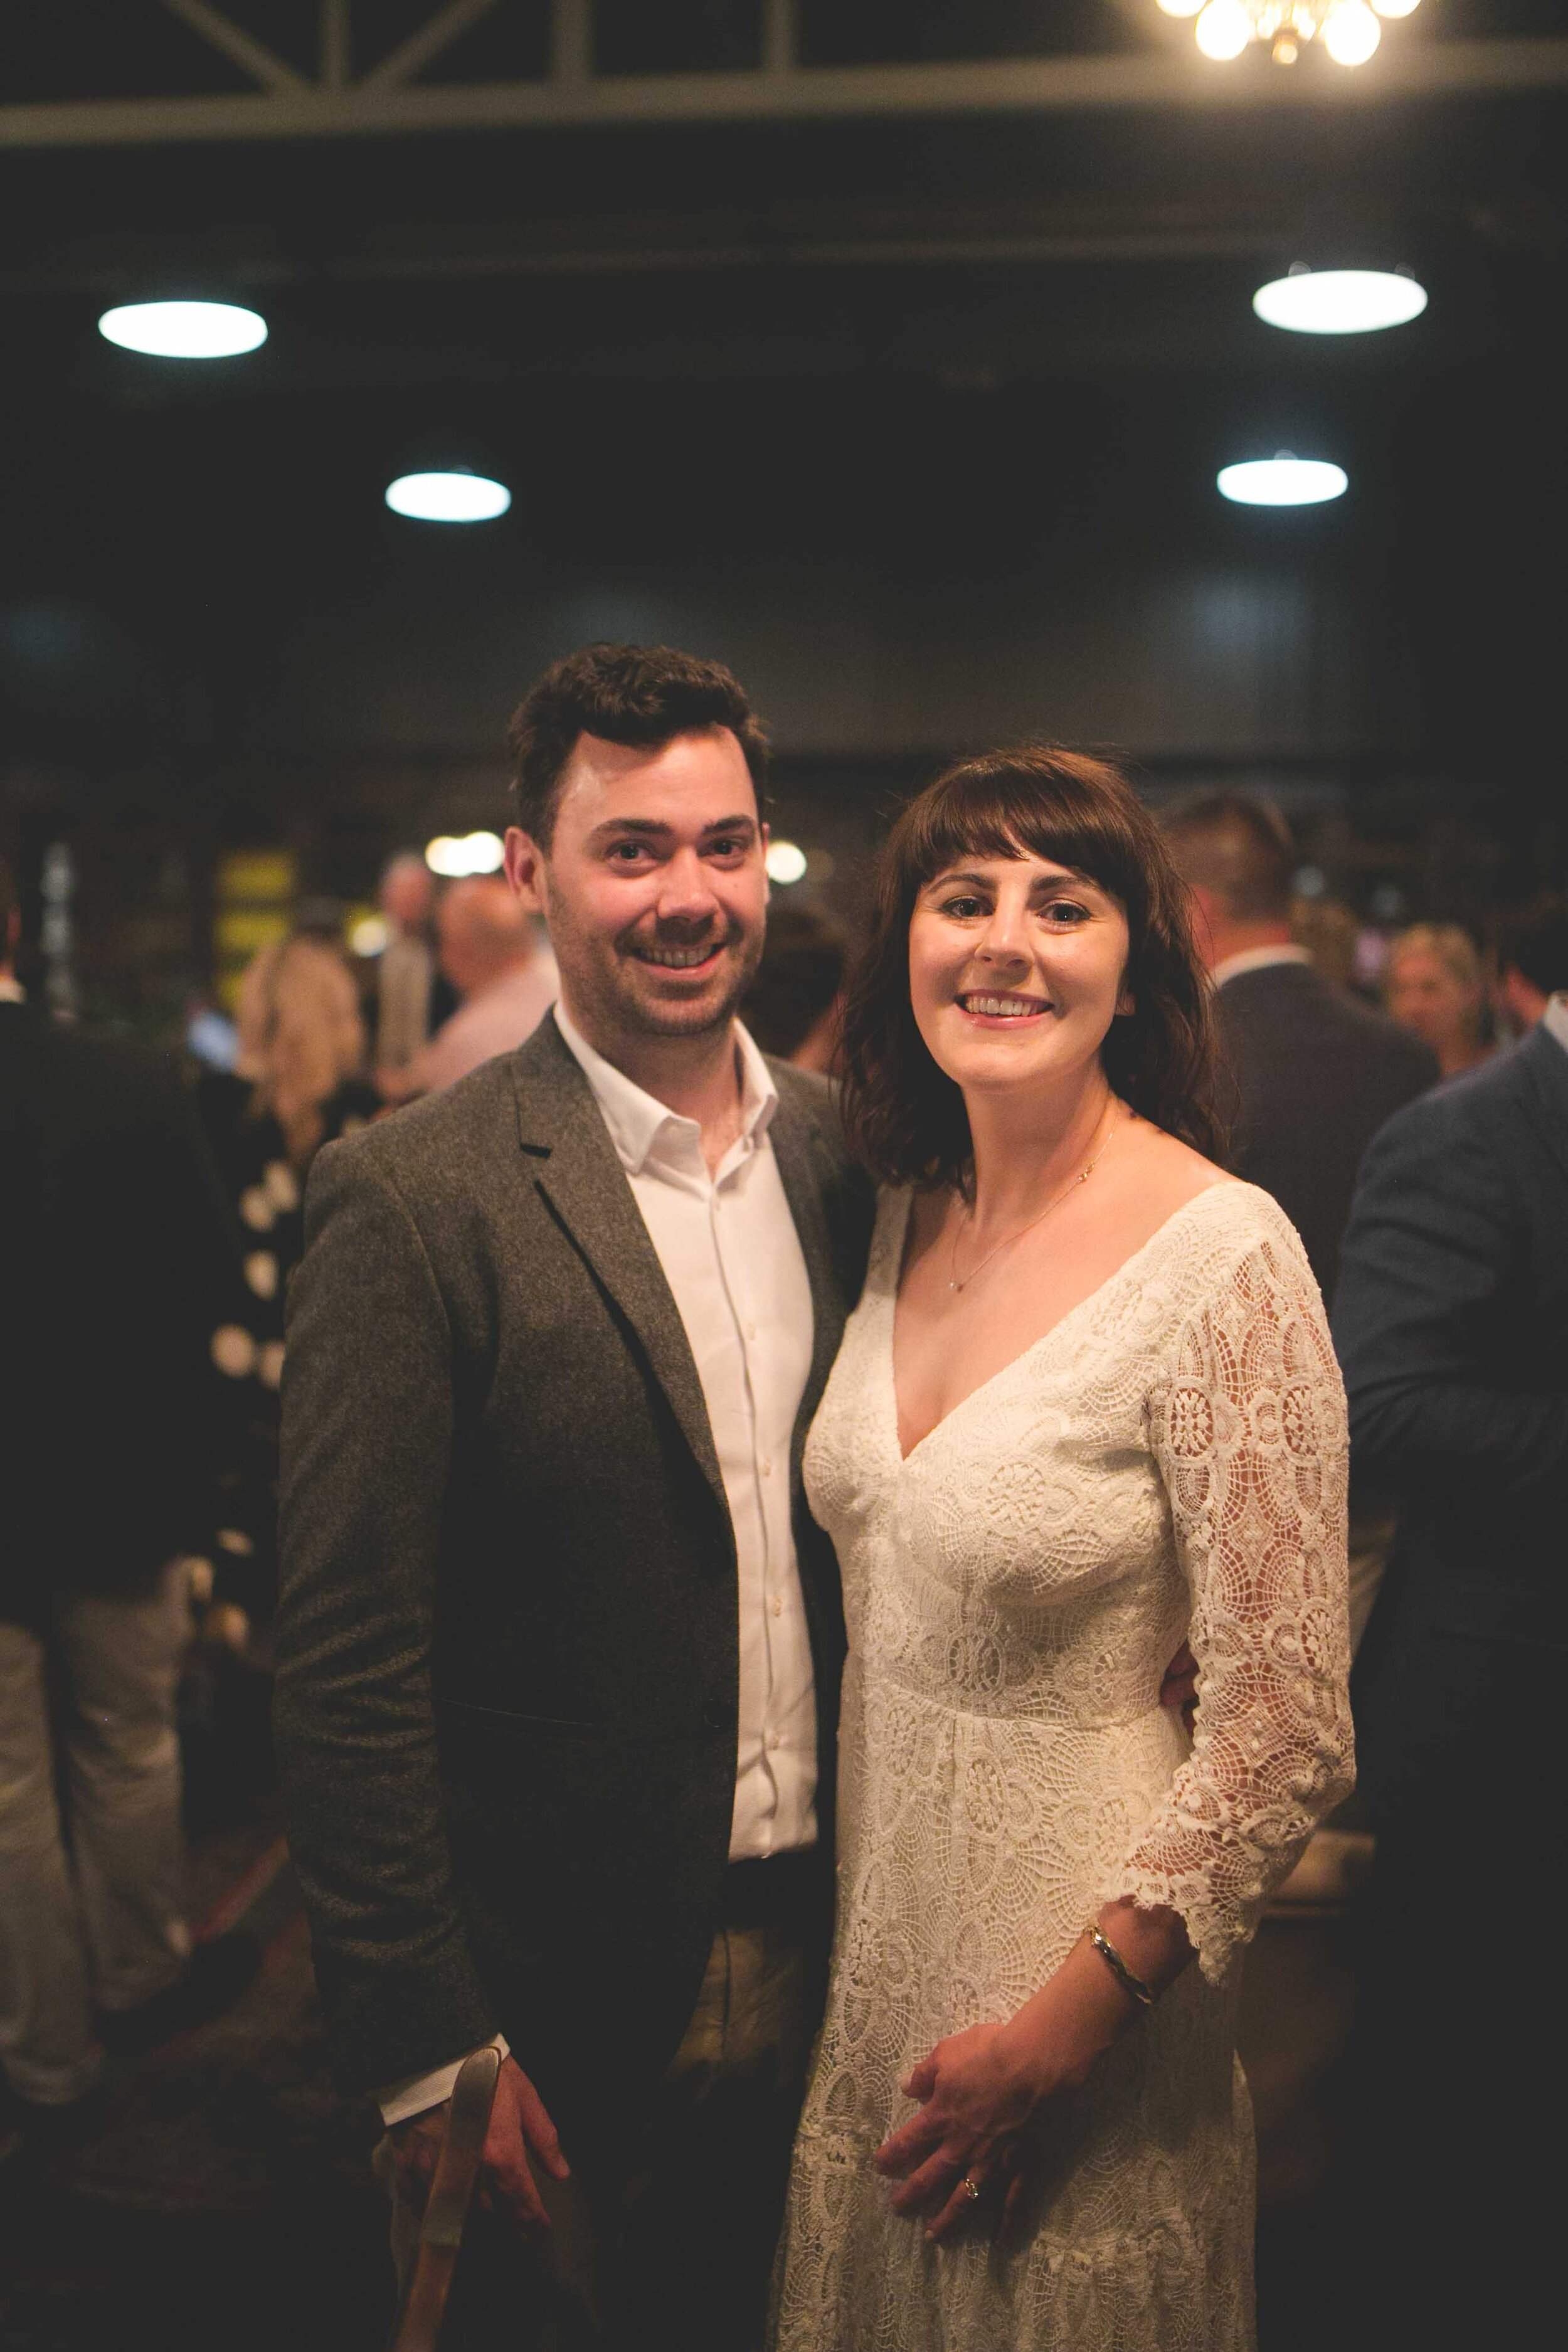 Claire & Mike-165.jpg